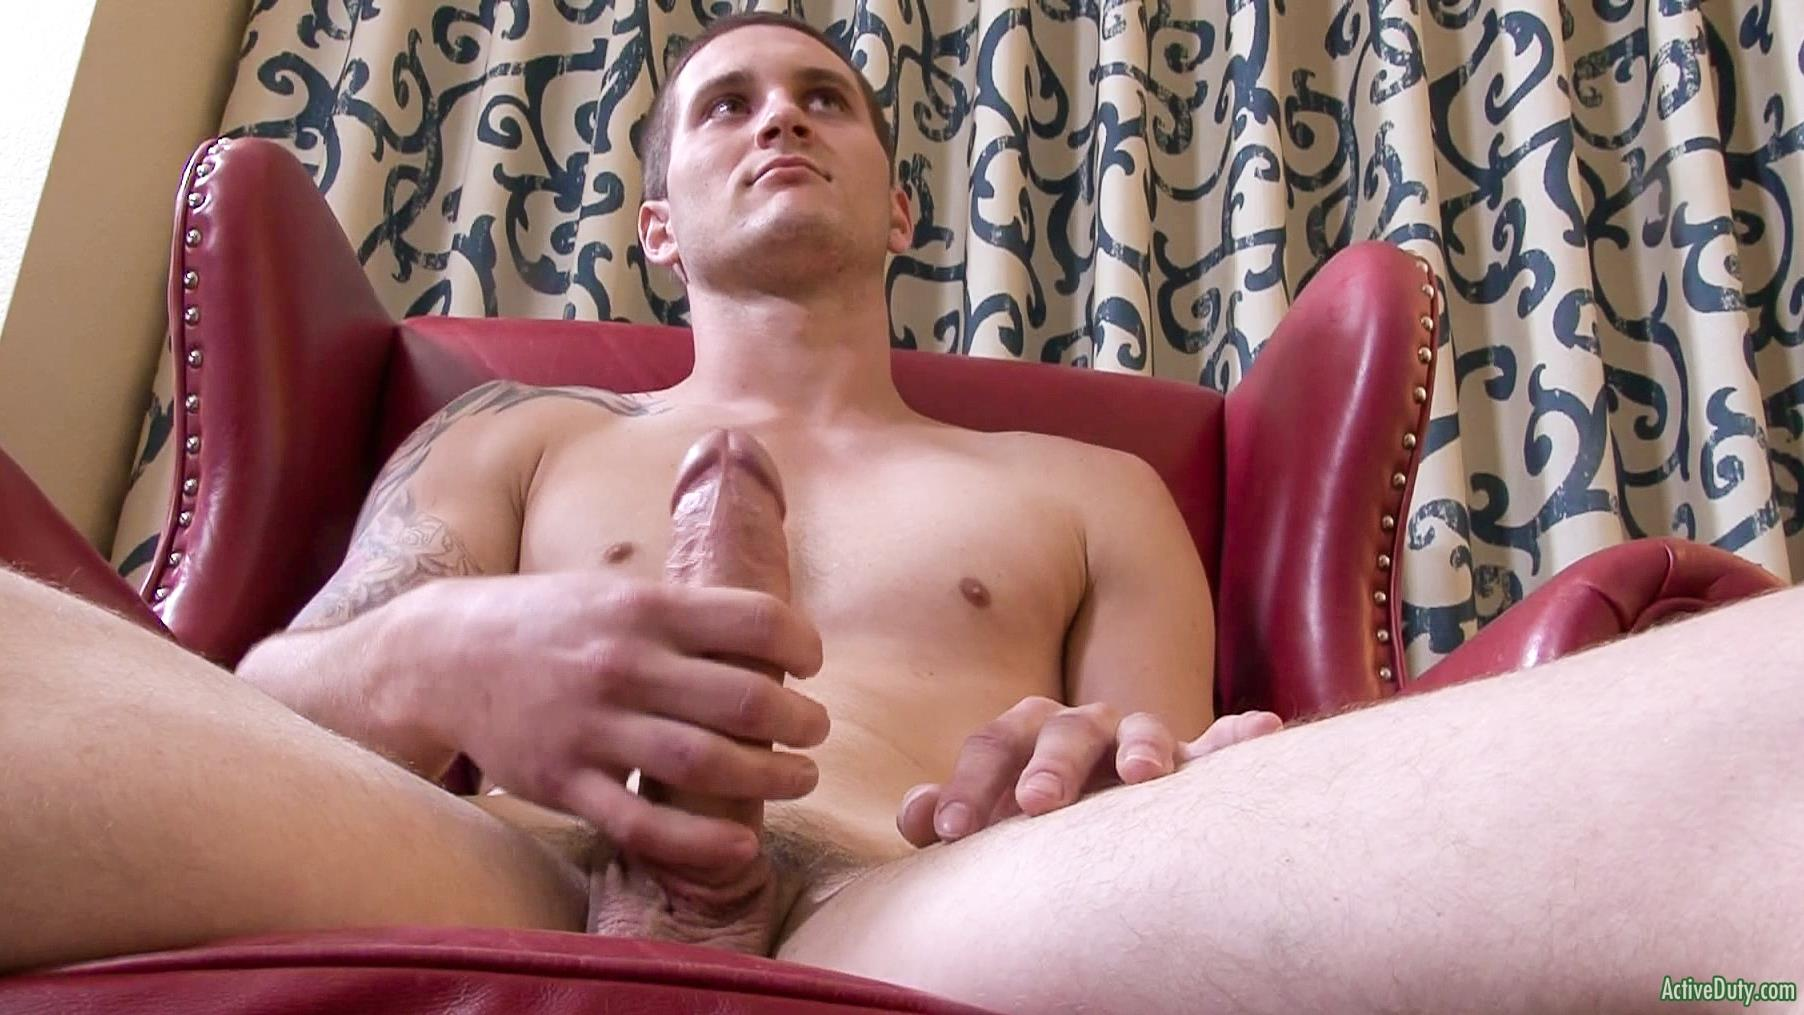 Active Duty Allen Lucas Army Private Jerking Off Big Uncut Cock Amateur Gay Porn 08 US Army Private Jerking His Big Uncut Cock